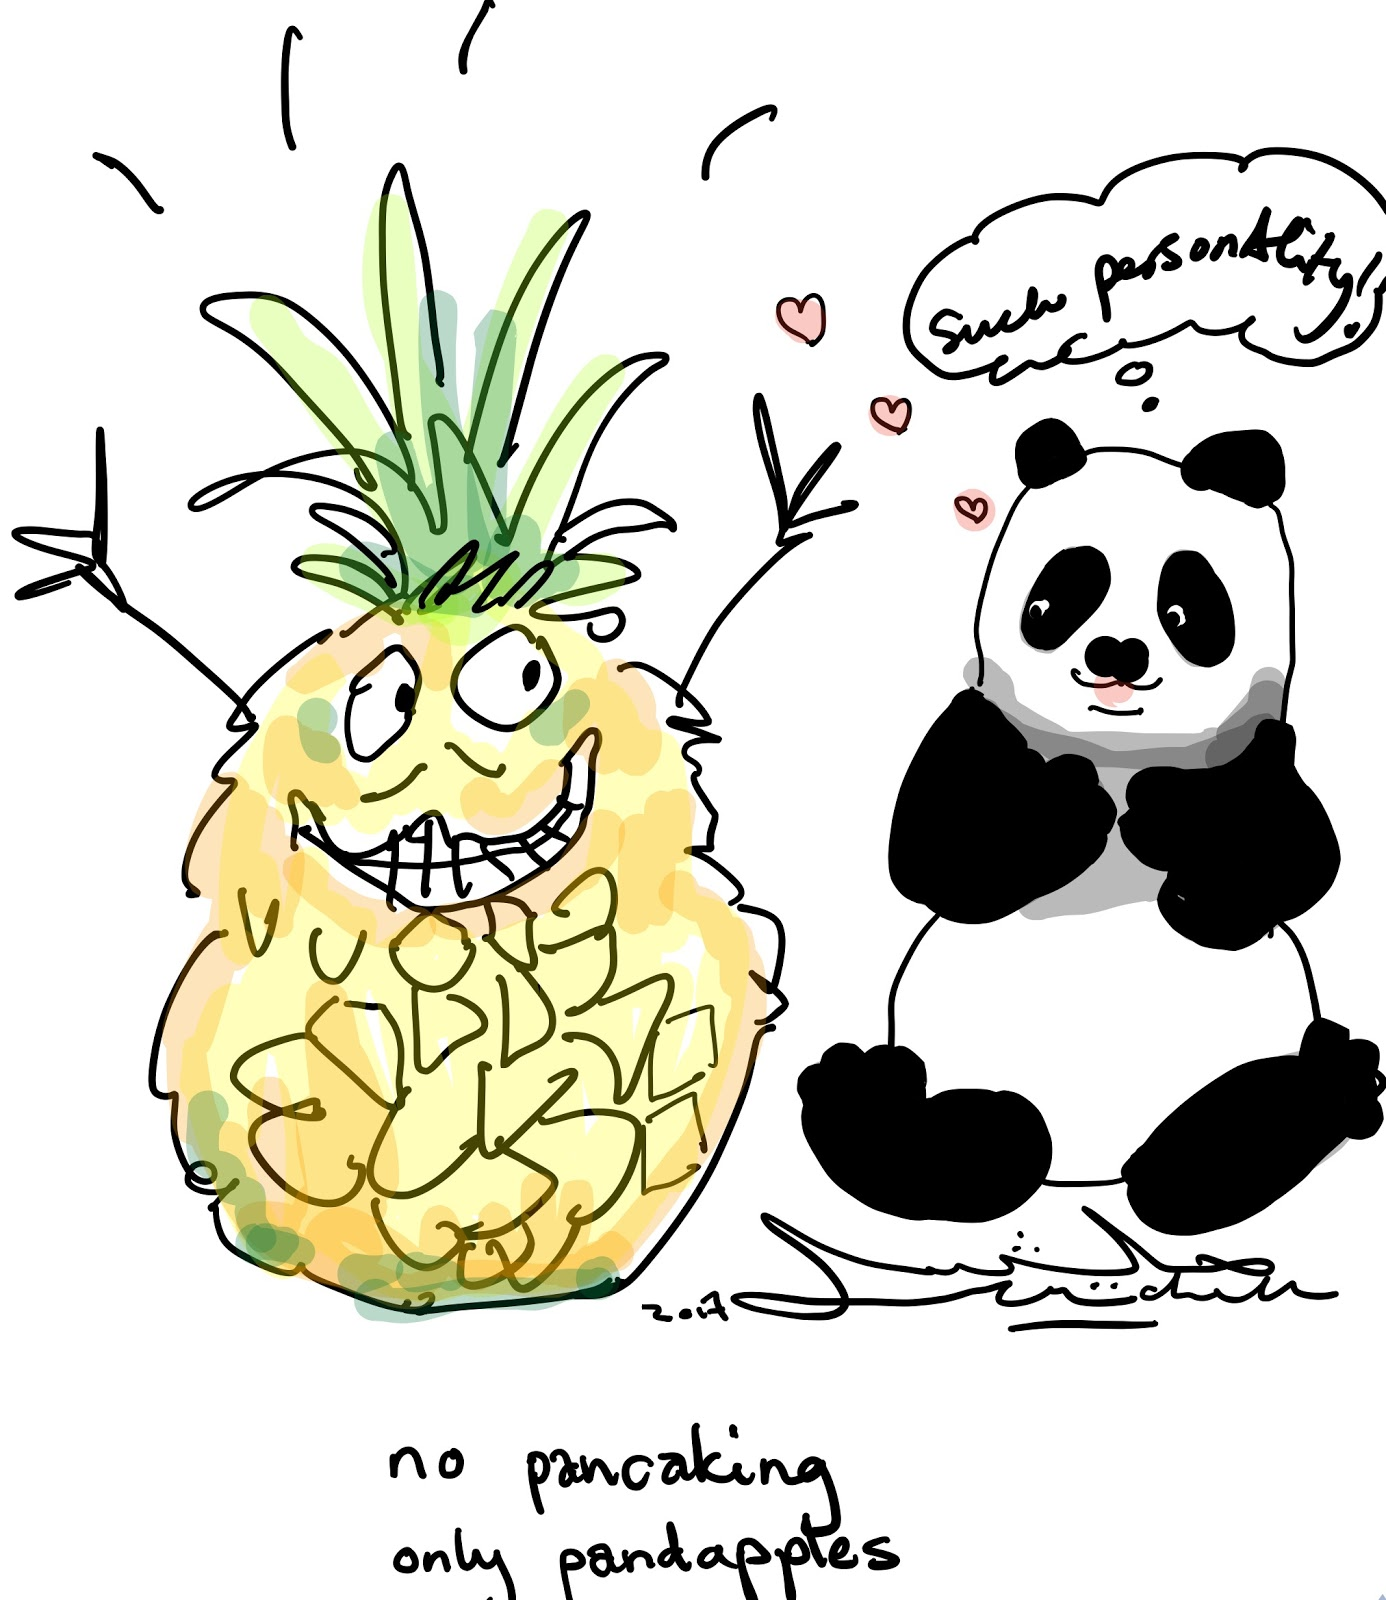 A panda approves of an excitable pineapple in a cartoon